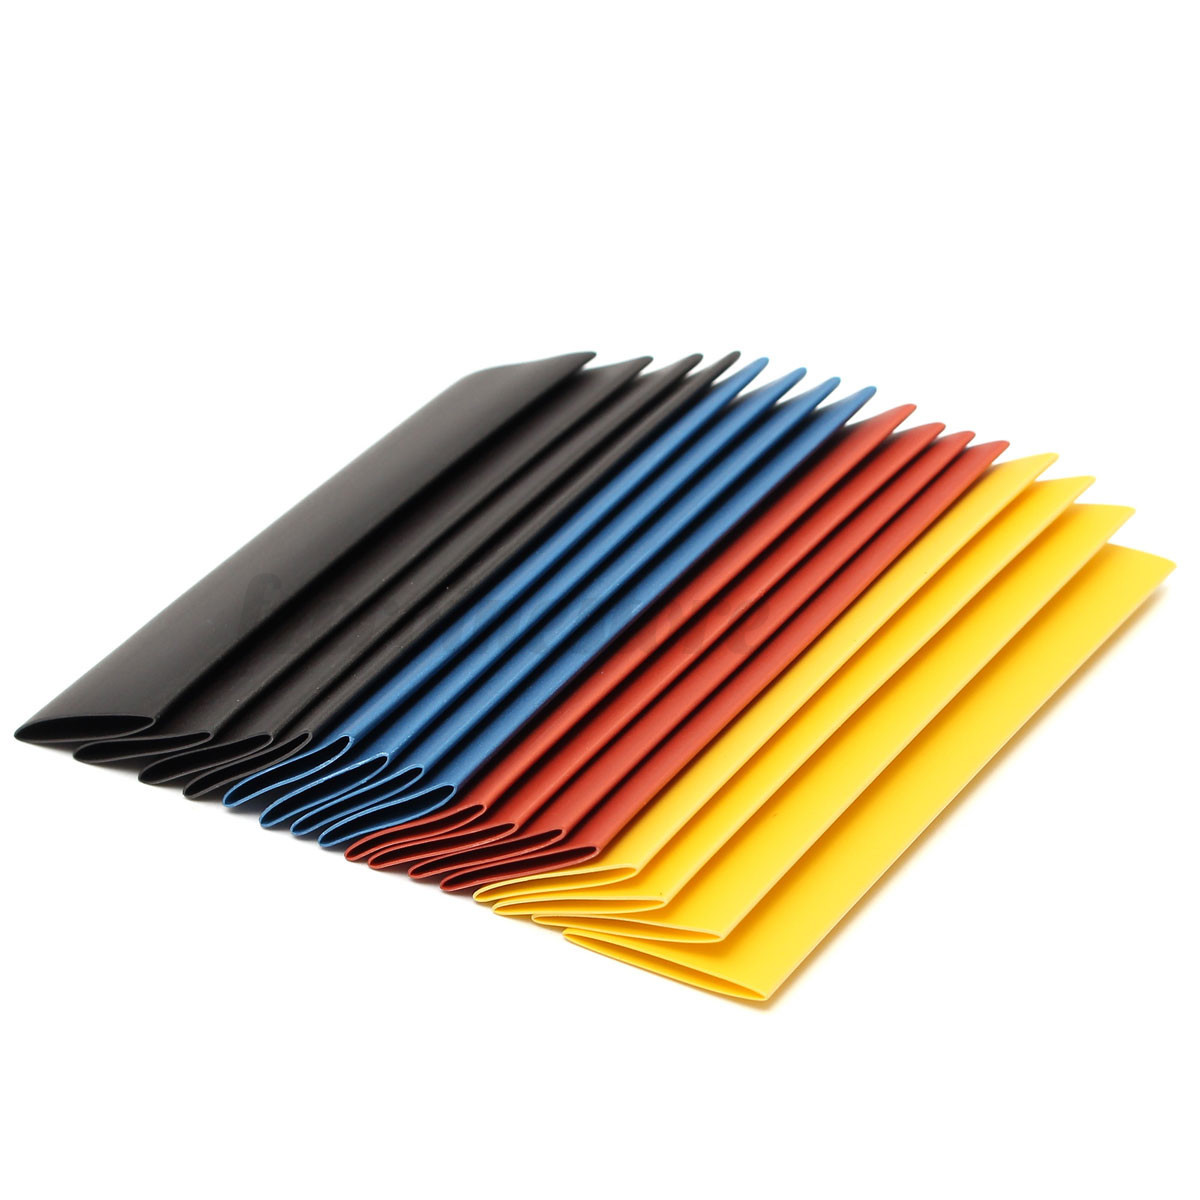 Pcs sizes car electrical cable heat shrink tube